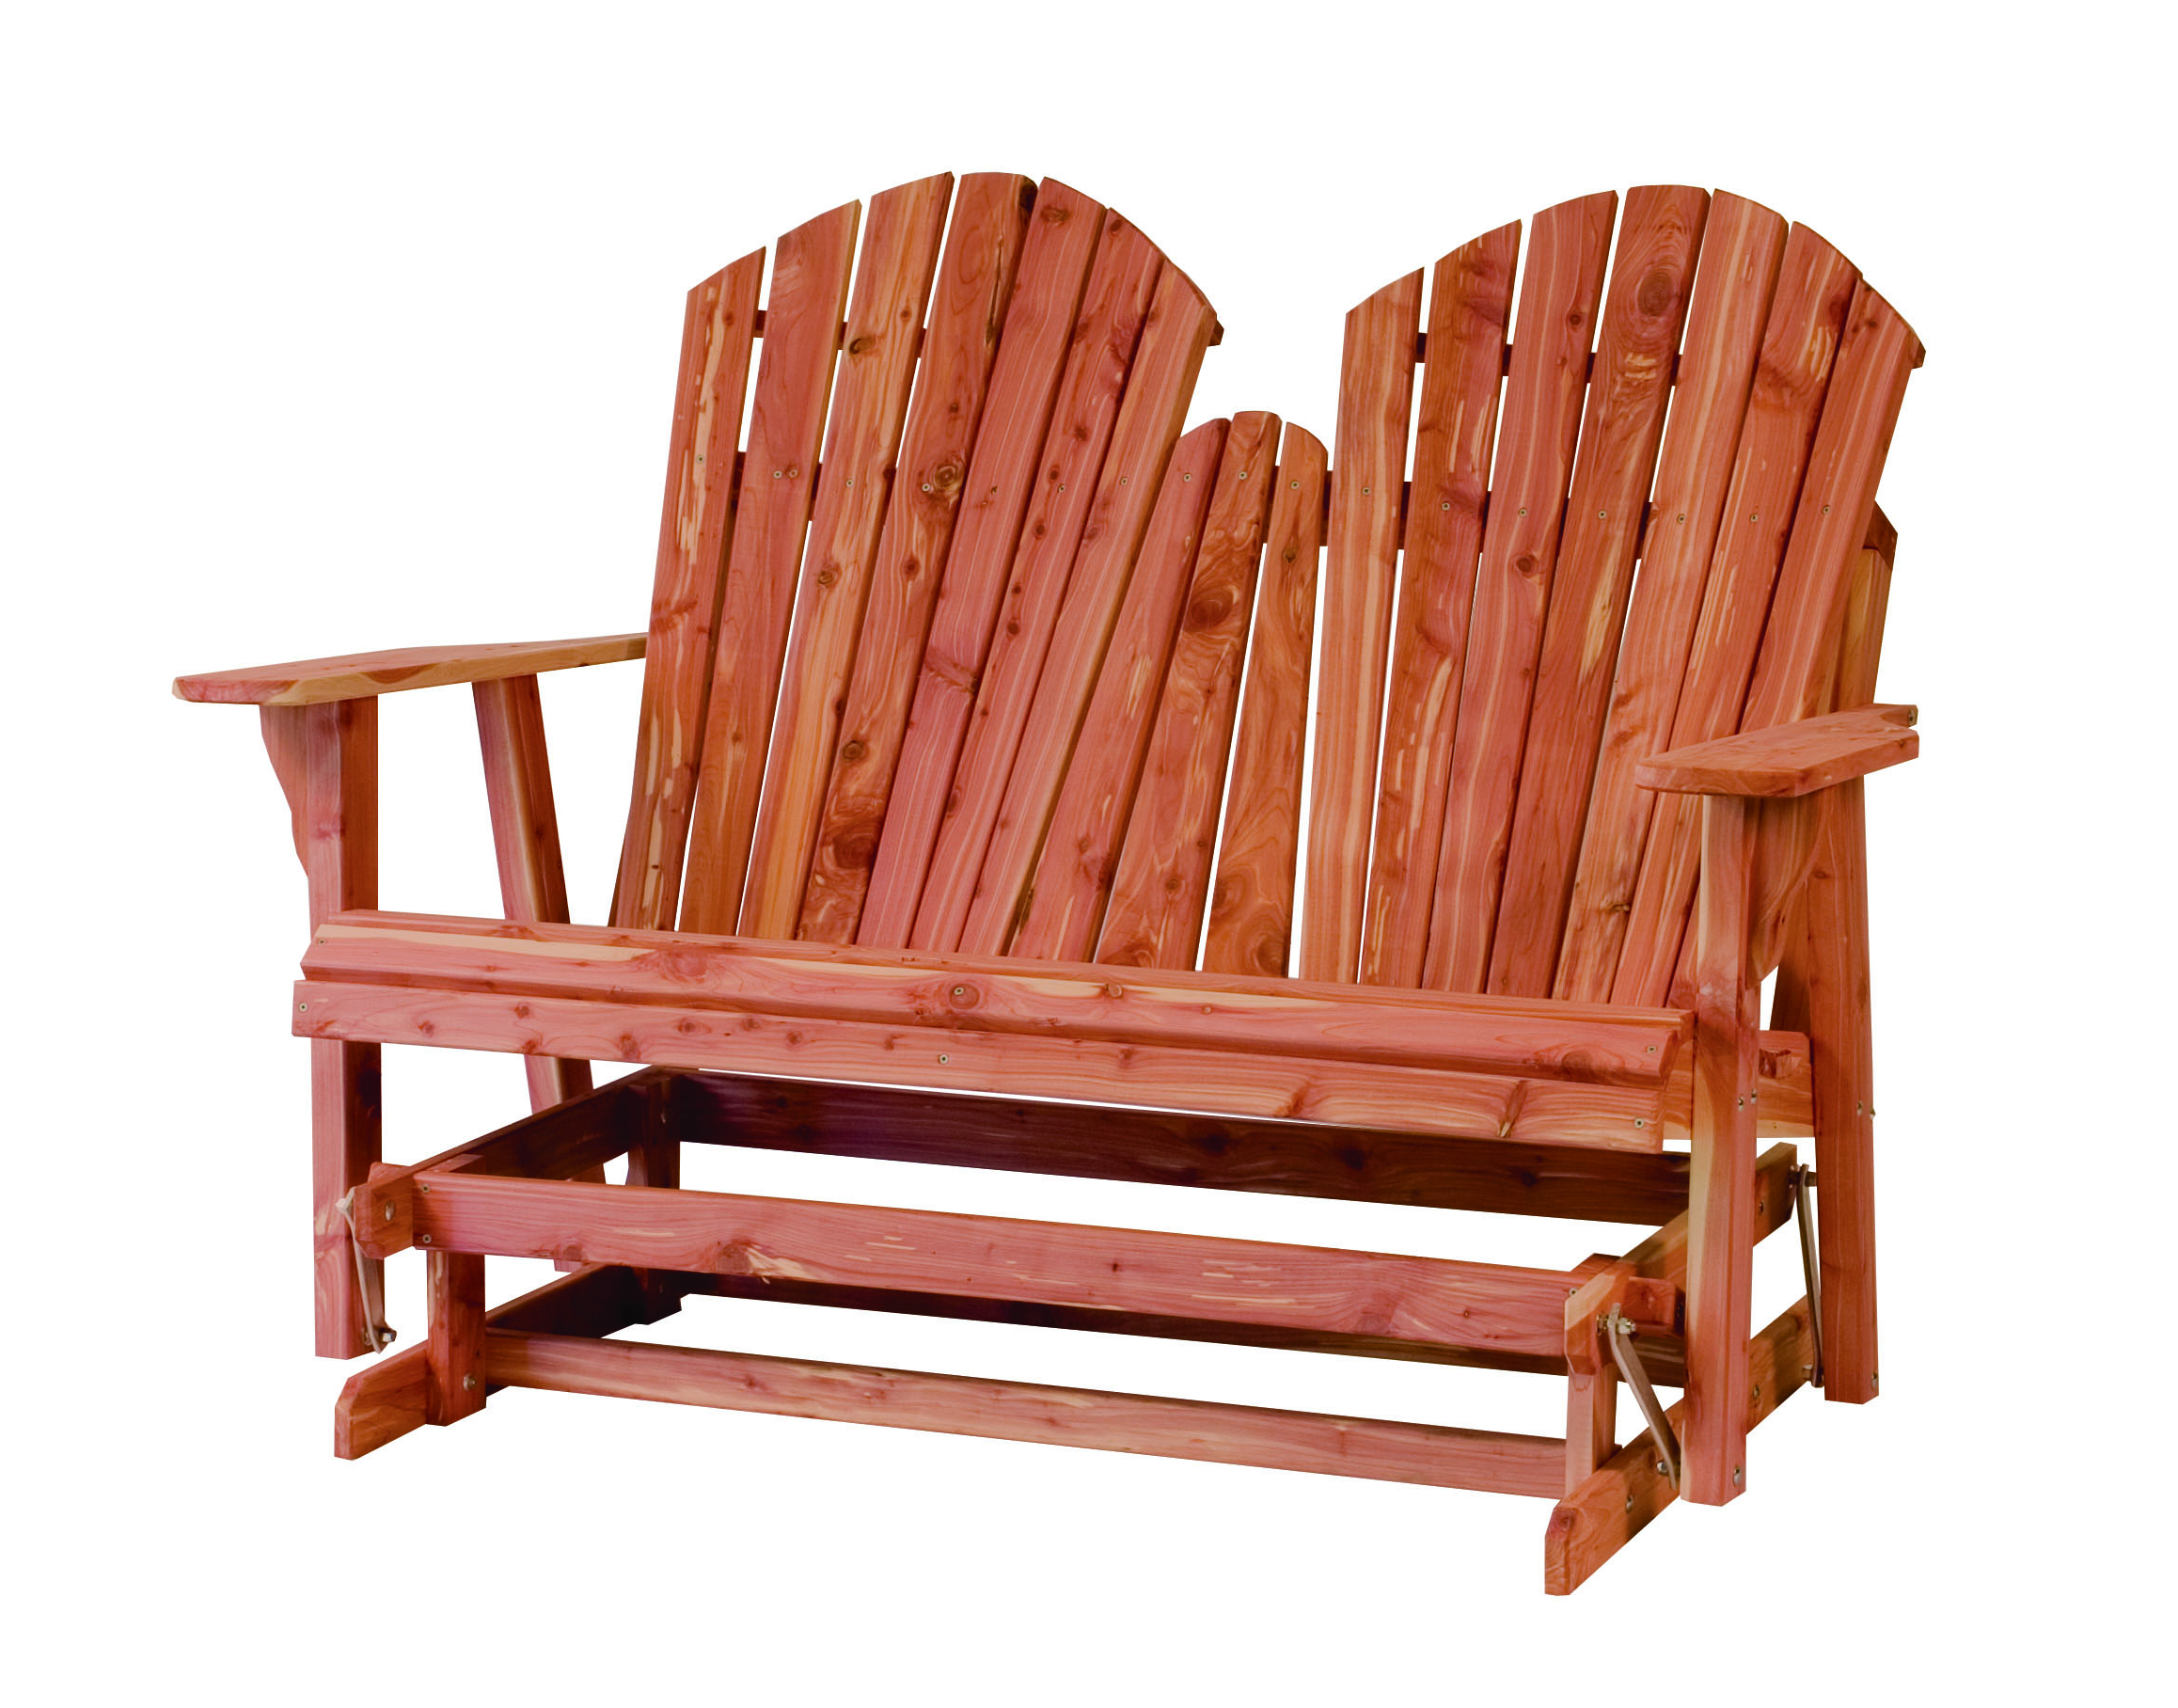 Loveseat Glider Benches Regarding Latest Rustic Red Cedar Gliders – Sturgeon River Pottery – Petoskey (View 23 of 30)